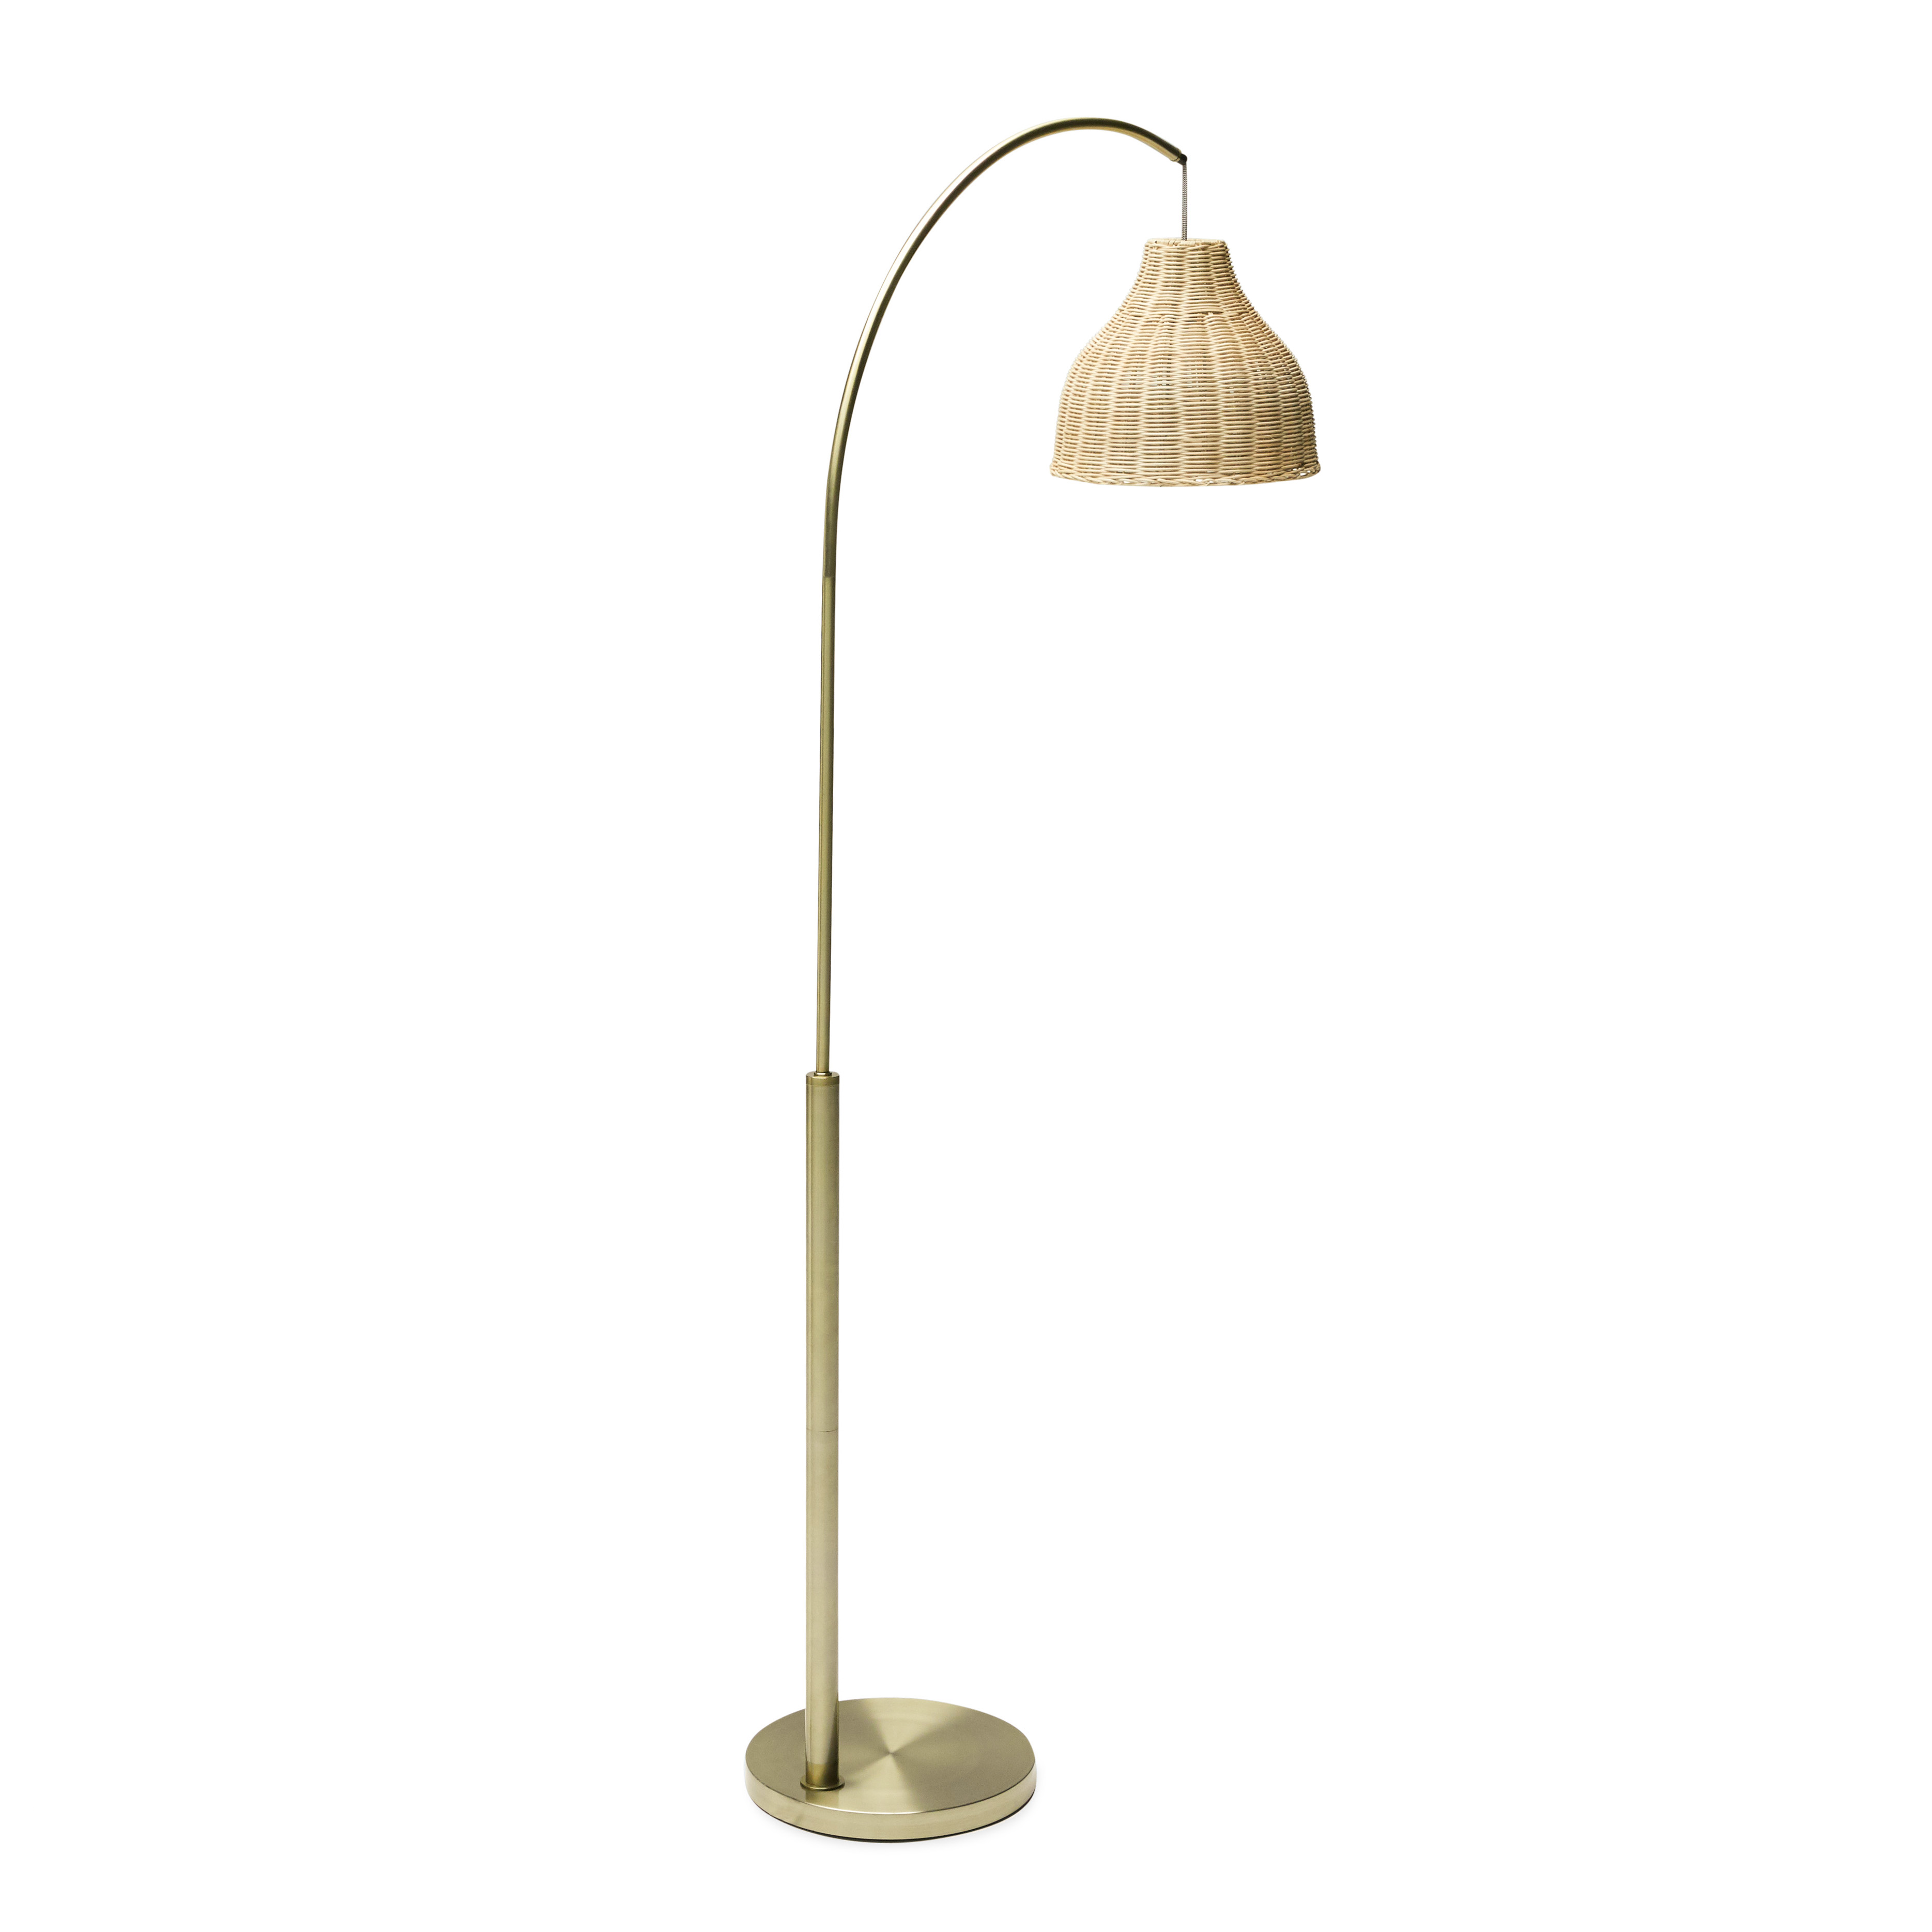 Antique Br Arch Floor Lamp With